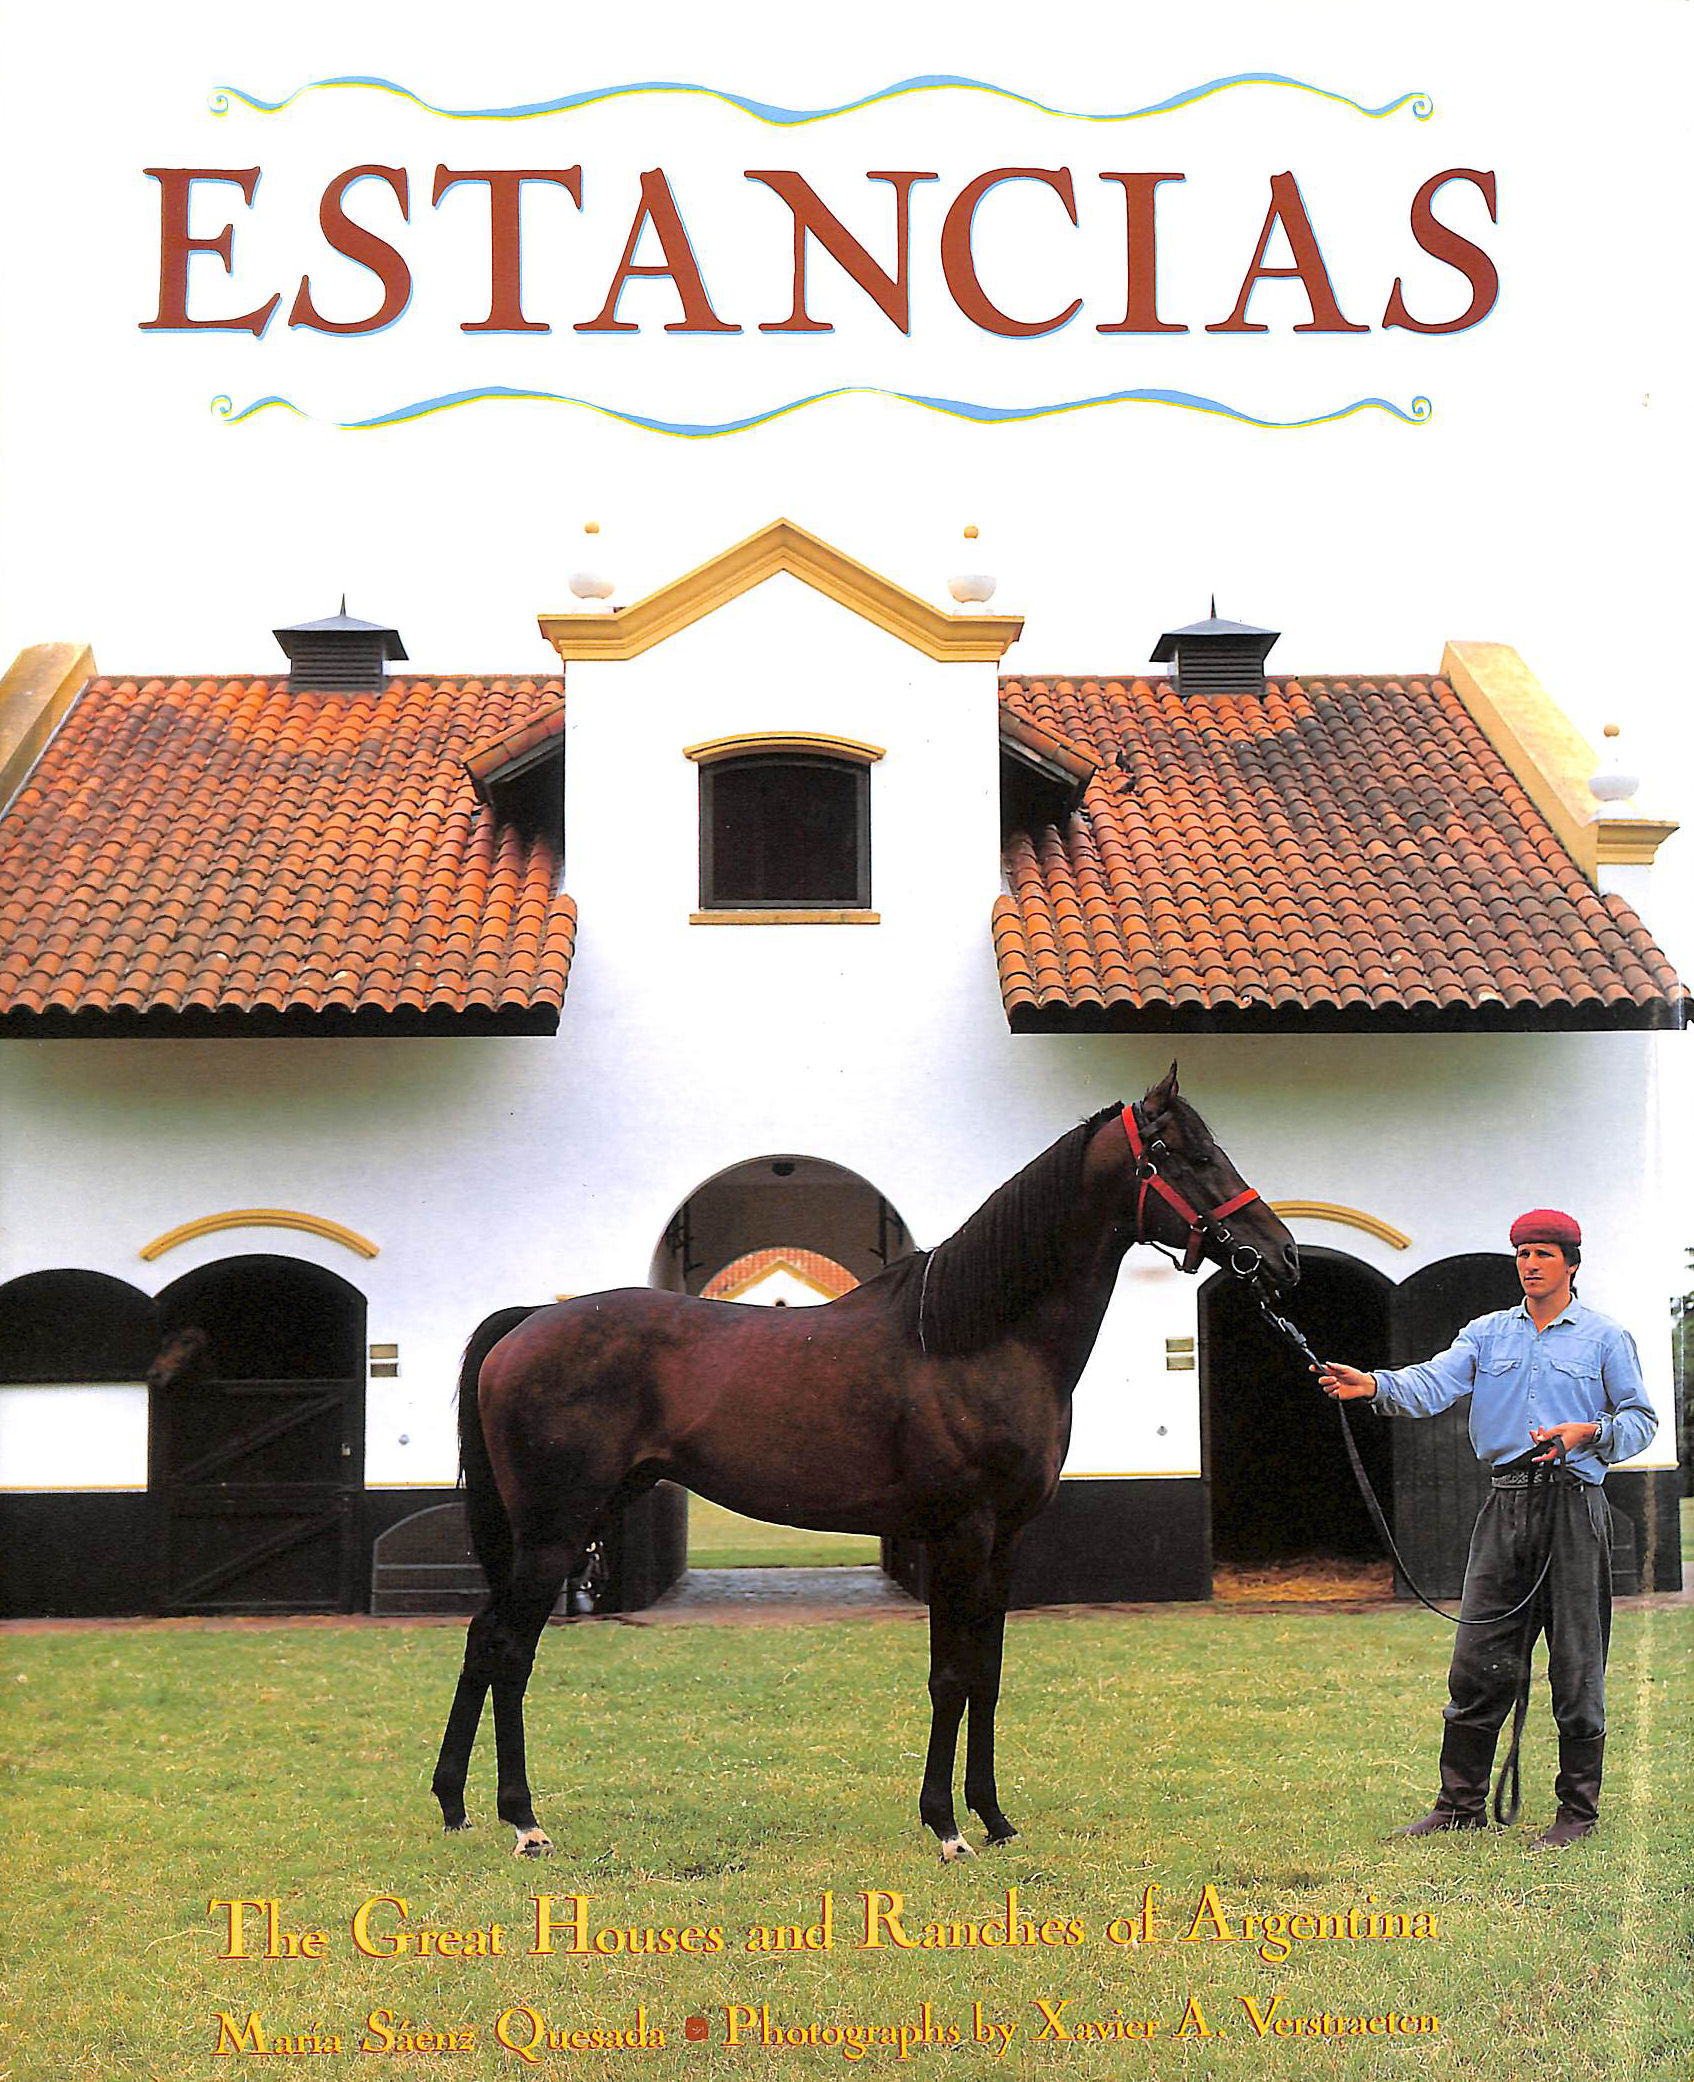 Image for Estancias, Ranches: The Great Houses and Ranches of Argentina